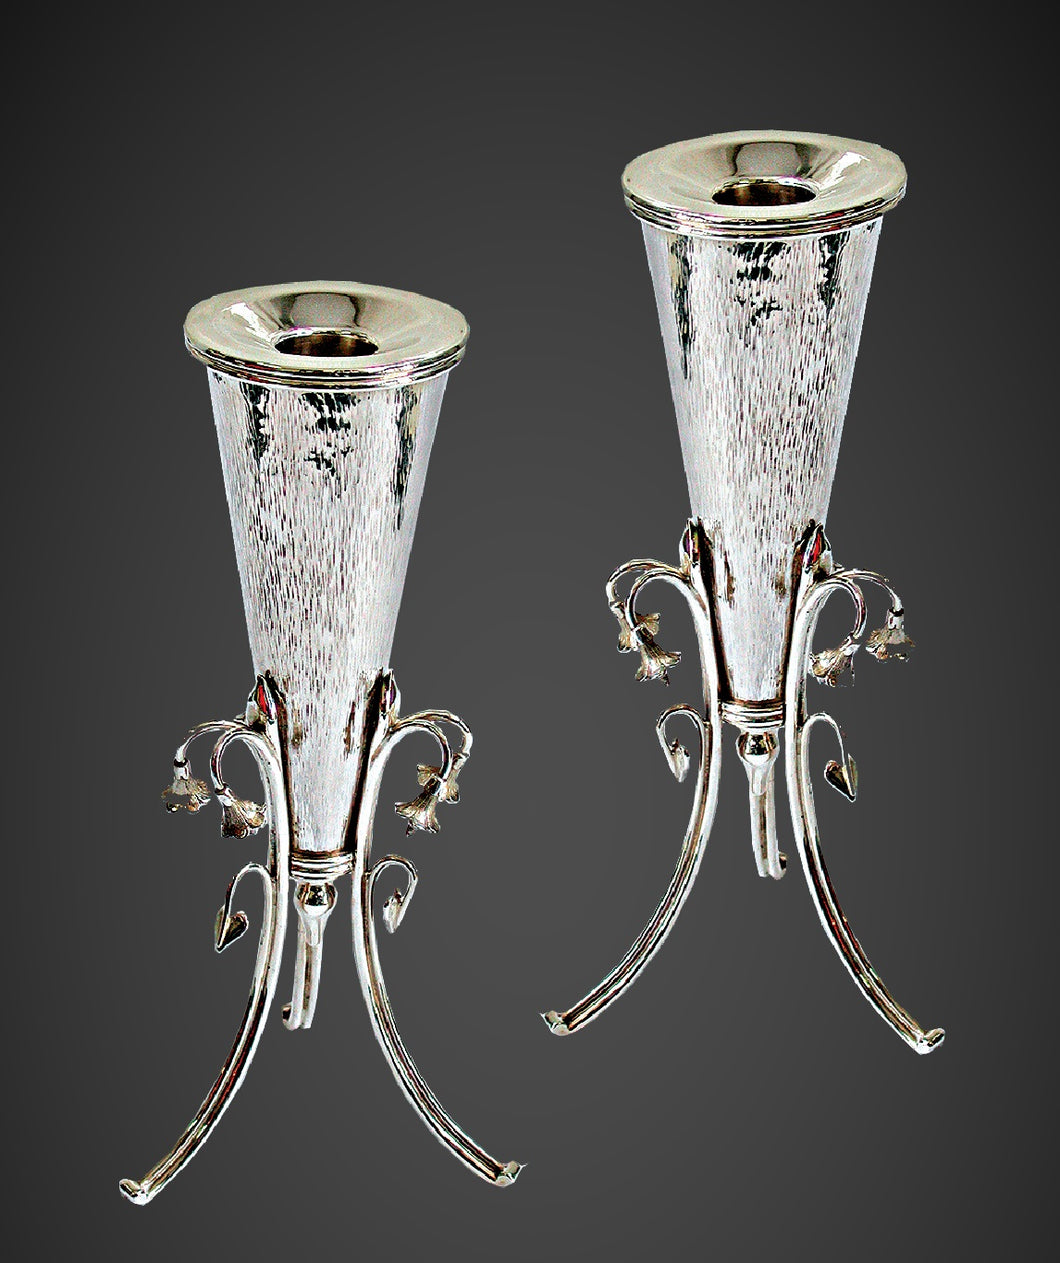 The Sheva Berachot Candlesticks/Cups